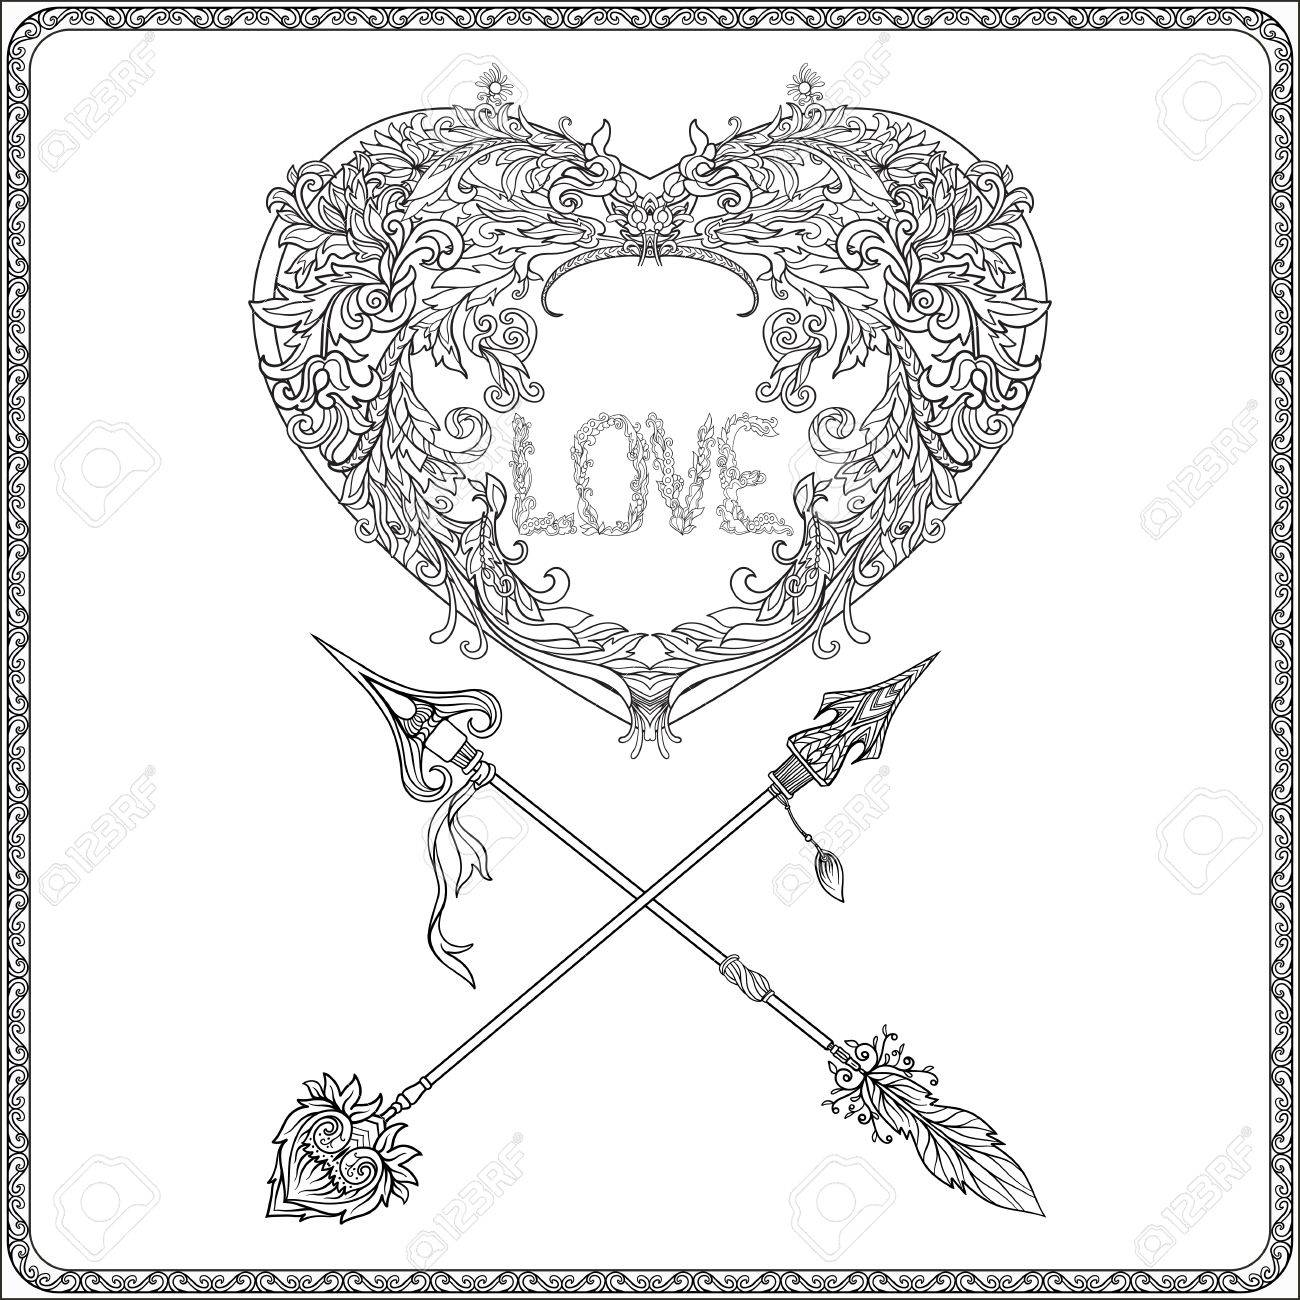 1300x1300 Decorative Love Heart With Decorative Arrows In Rococo, Victorian